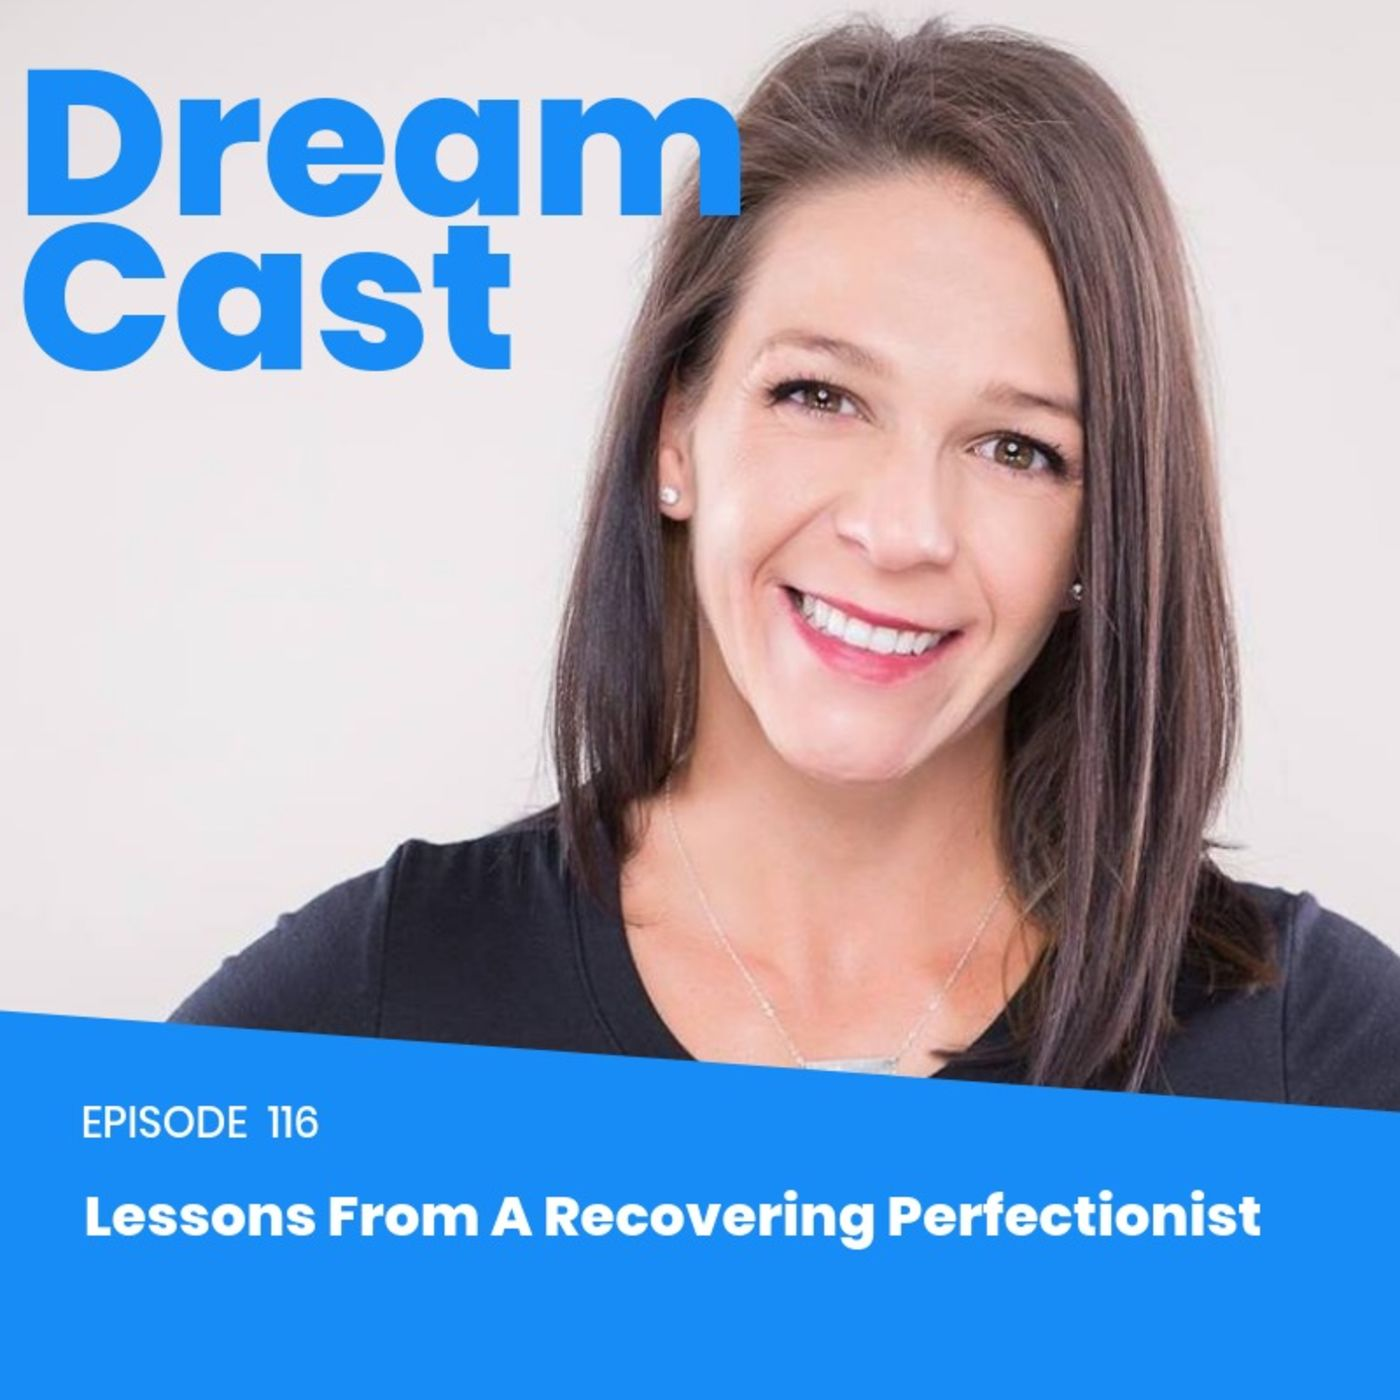 Episode 116 - Lessons From A Recovering Perfectionist with Rachel Brooks